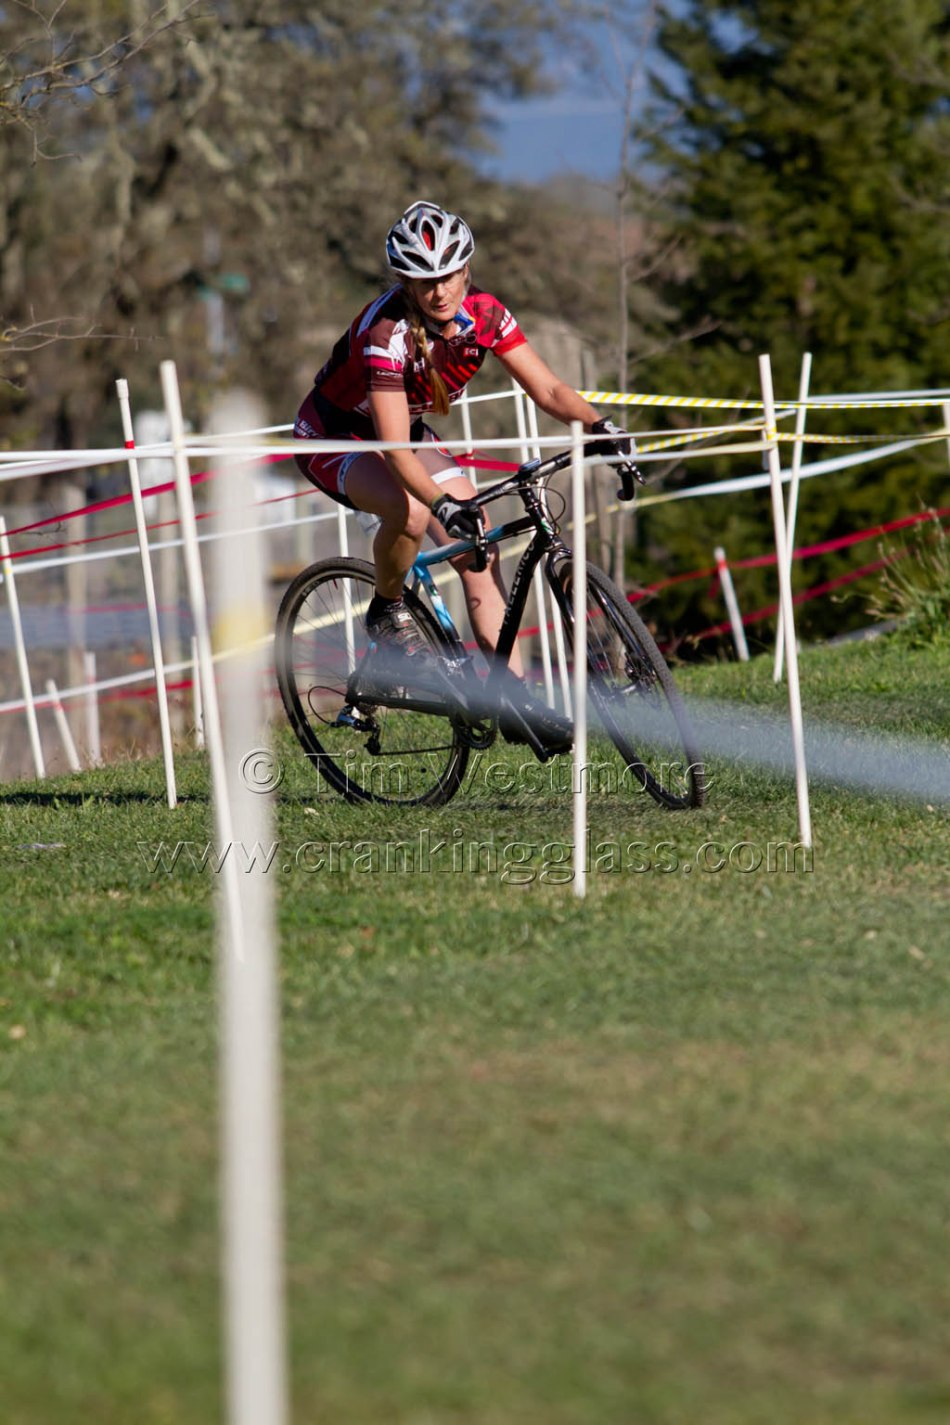 Michelle Nightingale in amongst the Santa Rosa Cup Course Tape